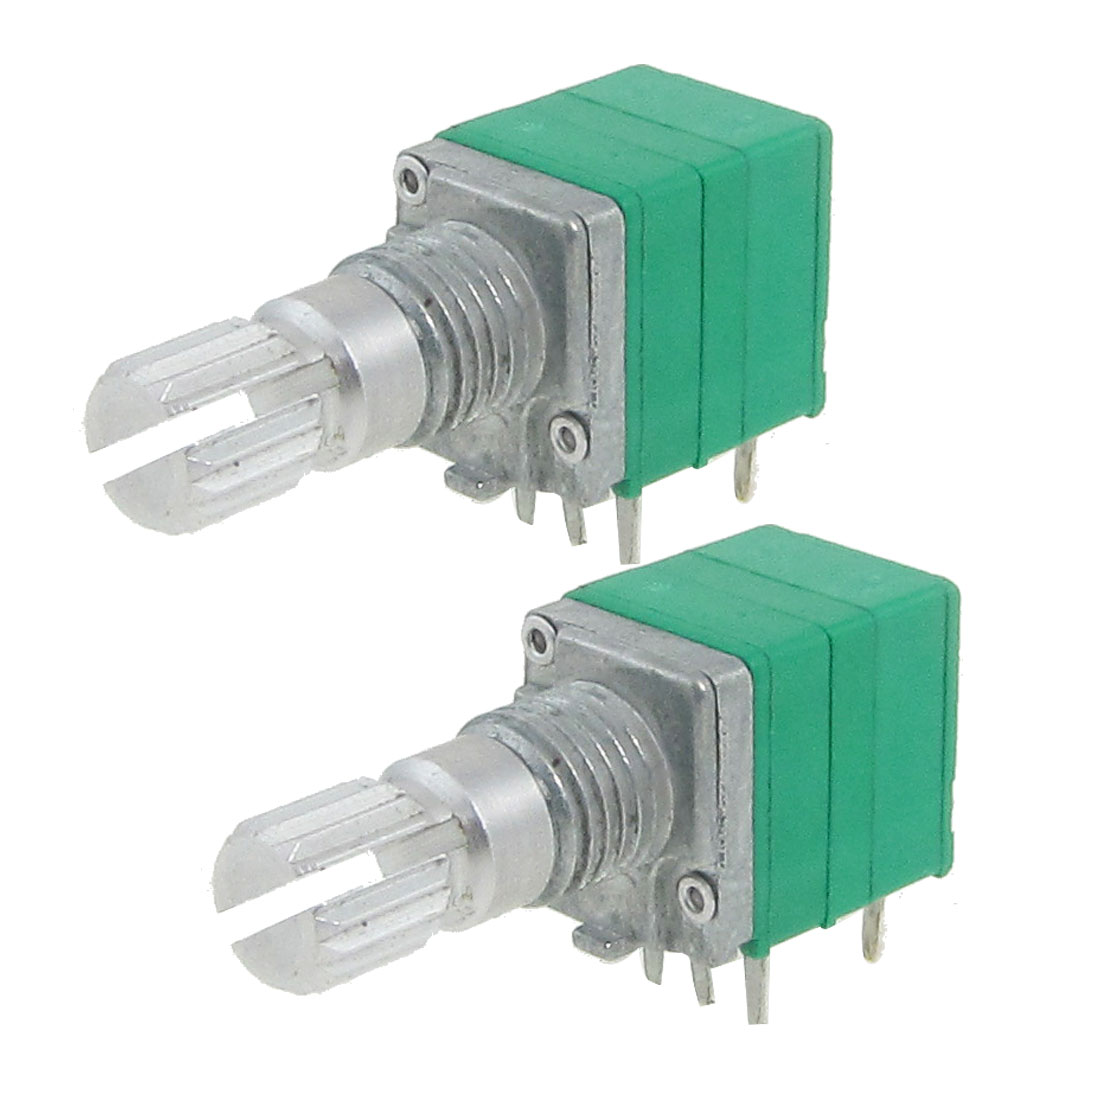 2 Pcs 50K ohm Carbon Composition Rotary Potentiometer R0911NS